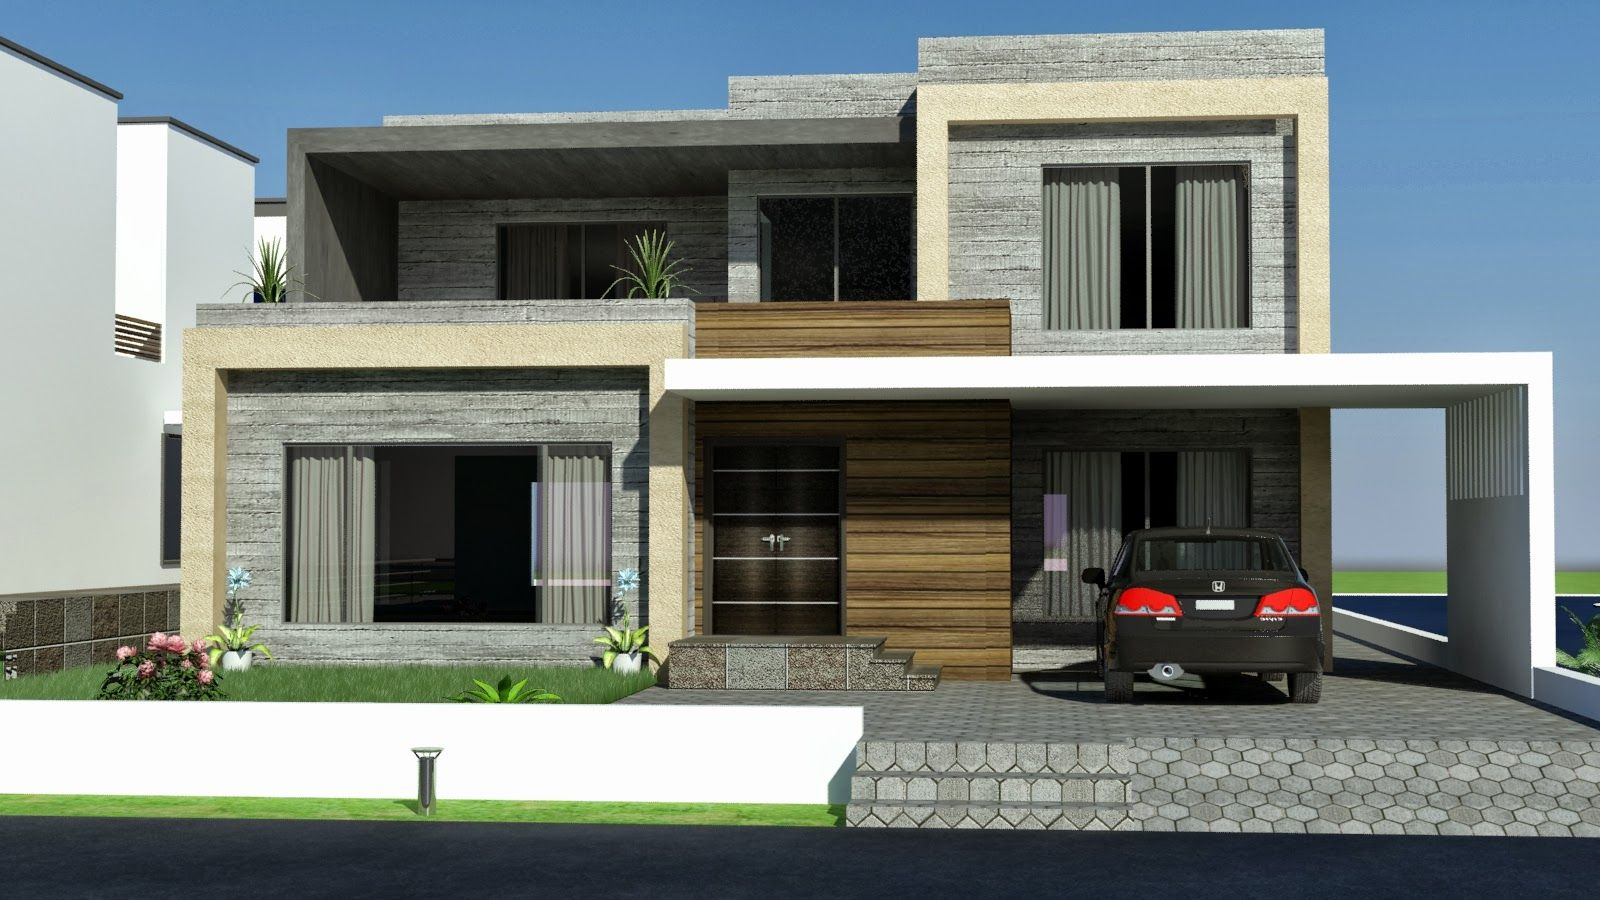 Front elevation modern house front single story rear 2 stories atrium and front yard Home building architecture